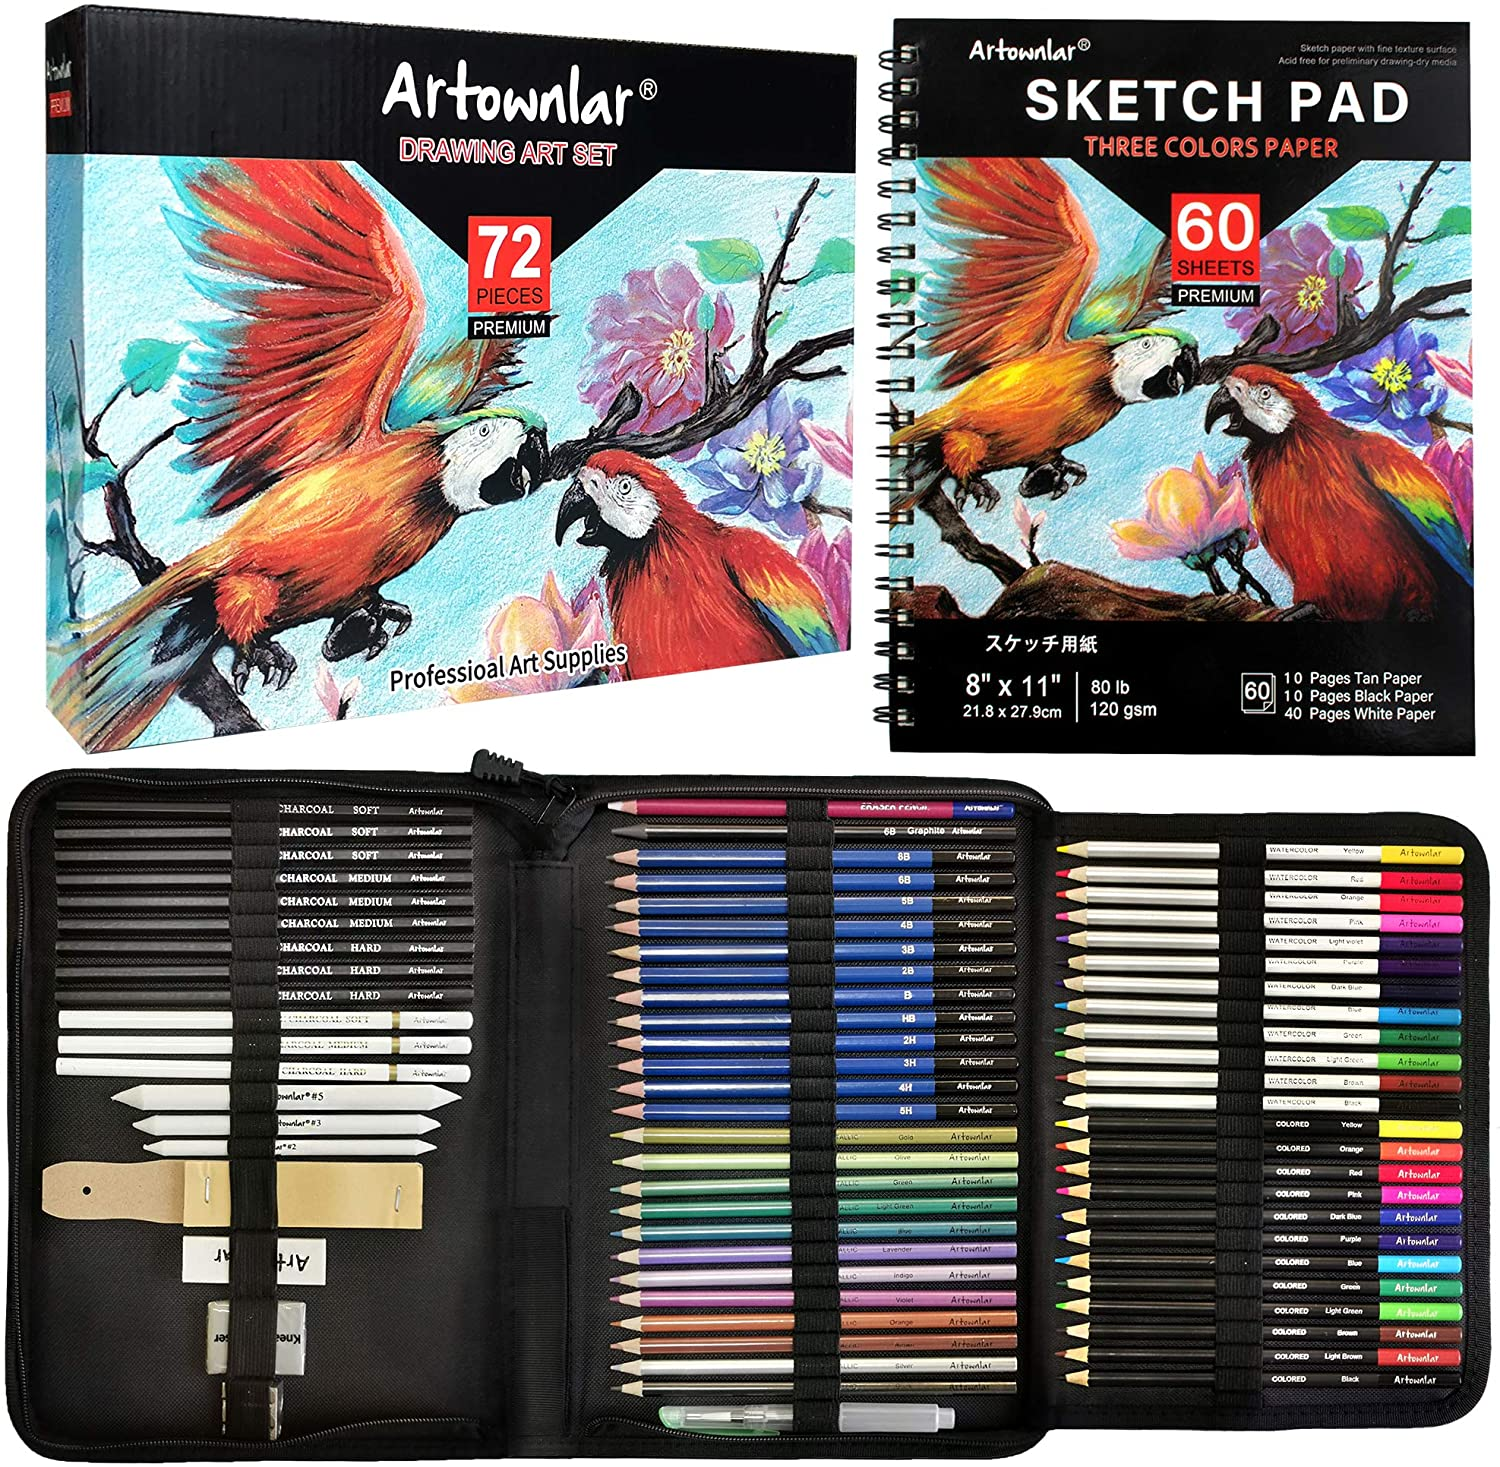 Artownlar Drawing Sketching Set 72 Pack with 3-Color Sketchbook| Pro Art Supplies Artist Coloring Kit for Adults, Kids, Teens|Graphite, Black White Charcoal, Colored, Eraser Pencil in Portable Case : Arts, Crafts & Sewing